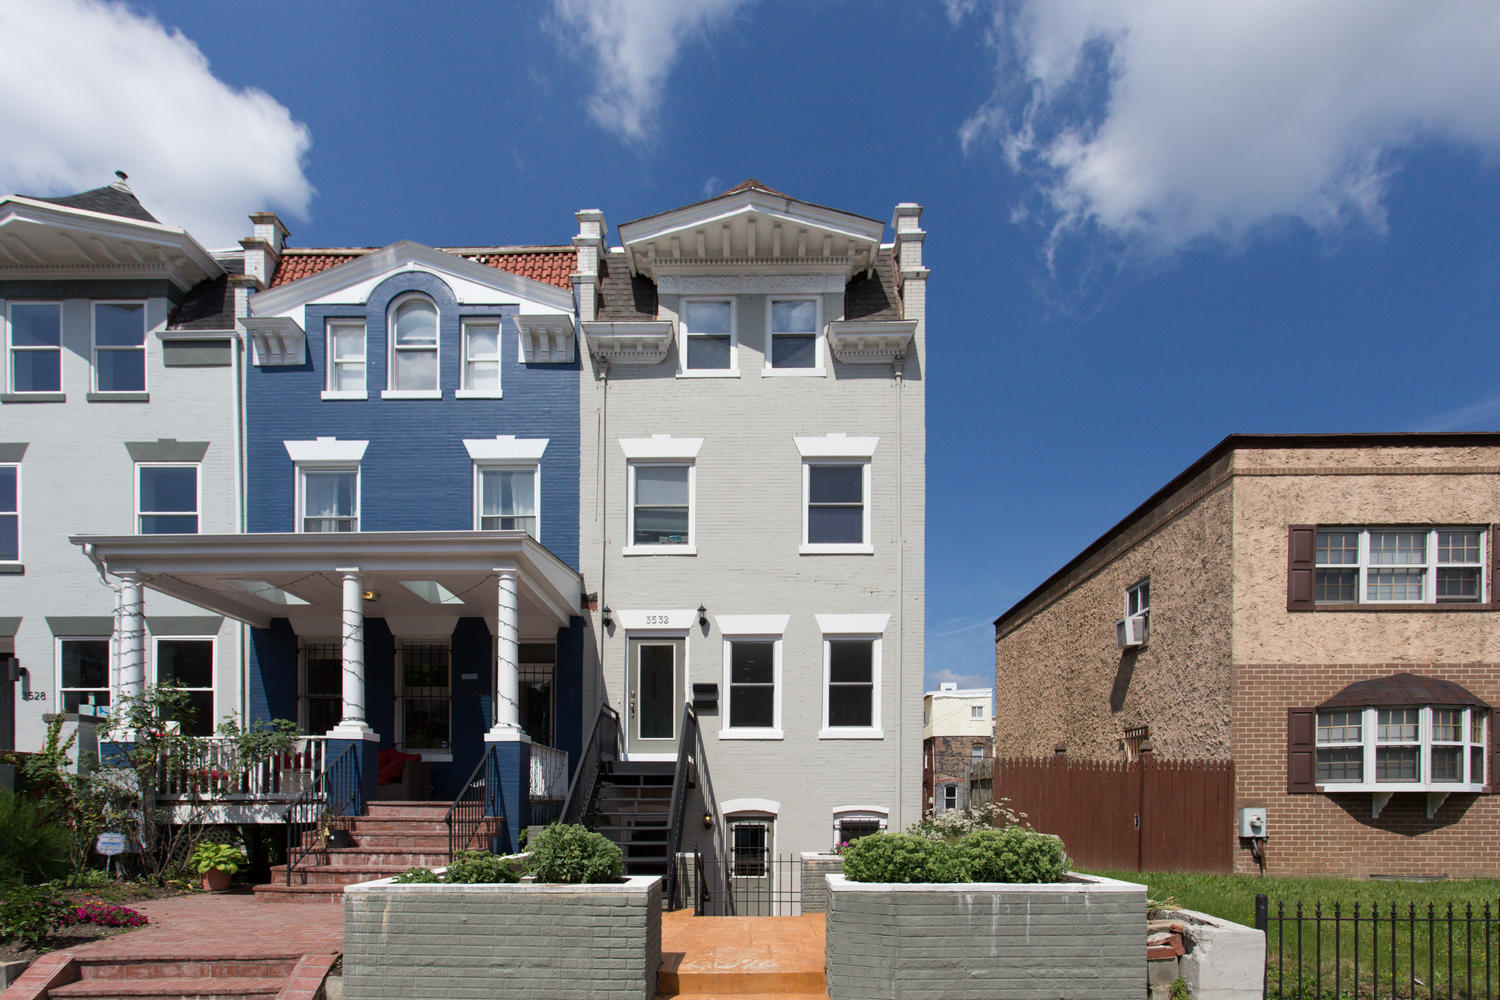 3532 13th St NW Washington DC-large-003-3-Front Exterior-1500x1000-72dpi.jpg